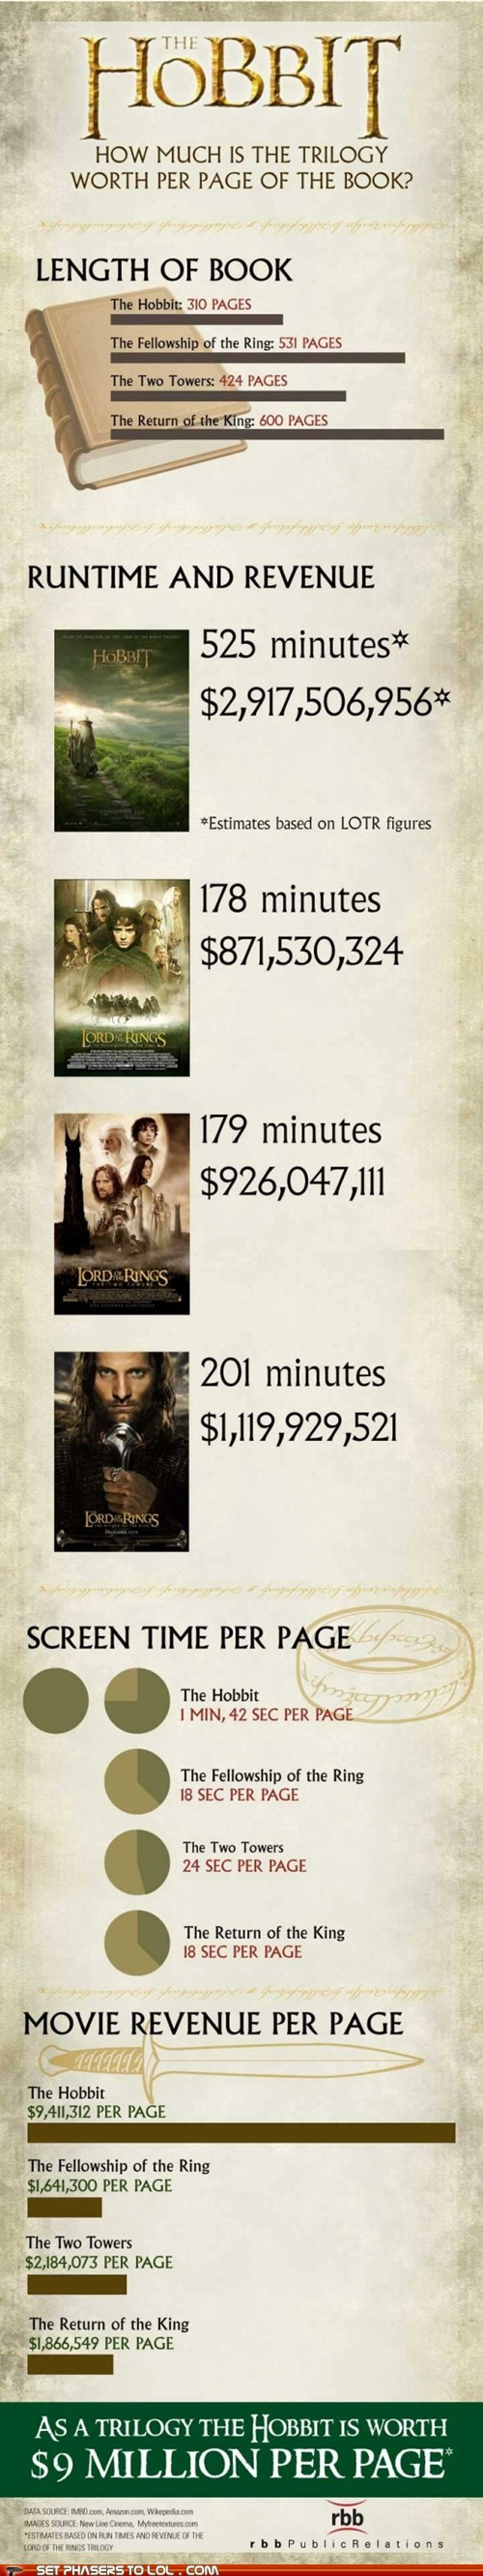 box office,infographic,Lord of The Ring,Lord of the Rings,money,movies,peter jackson,worth